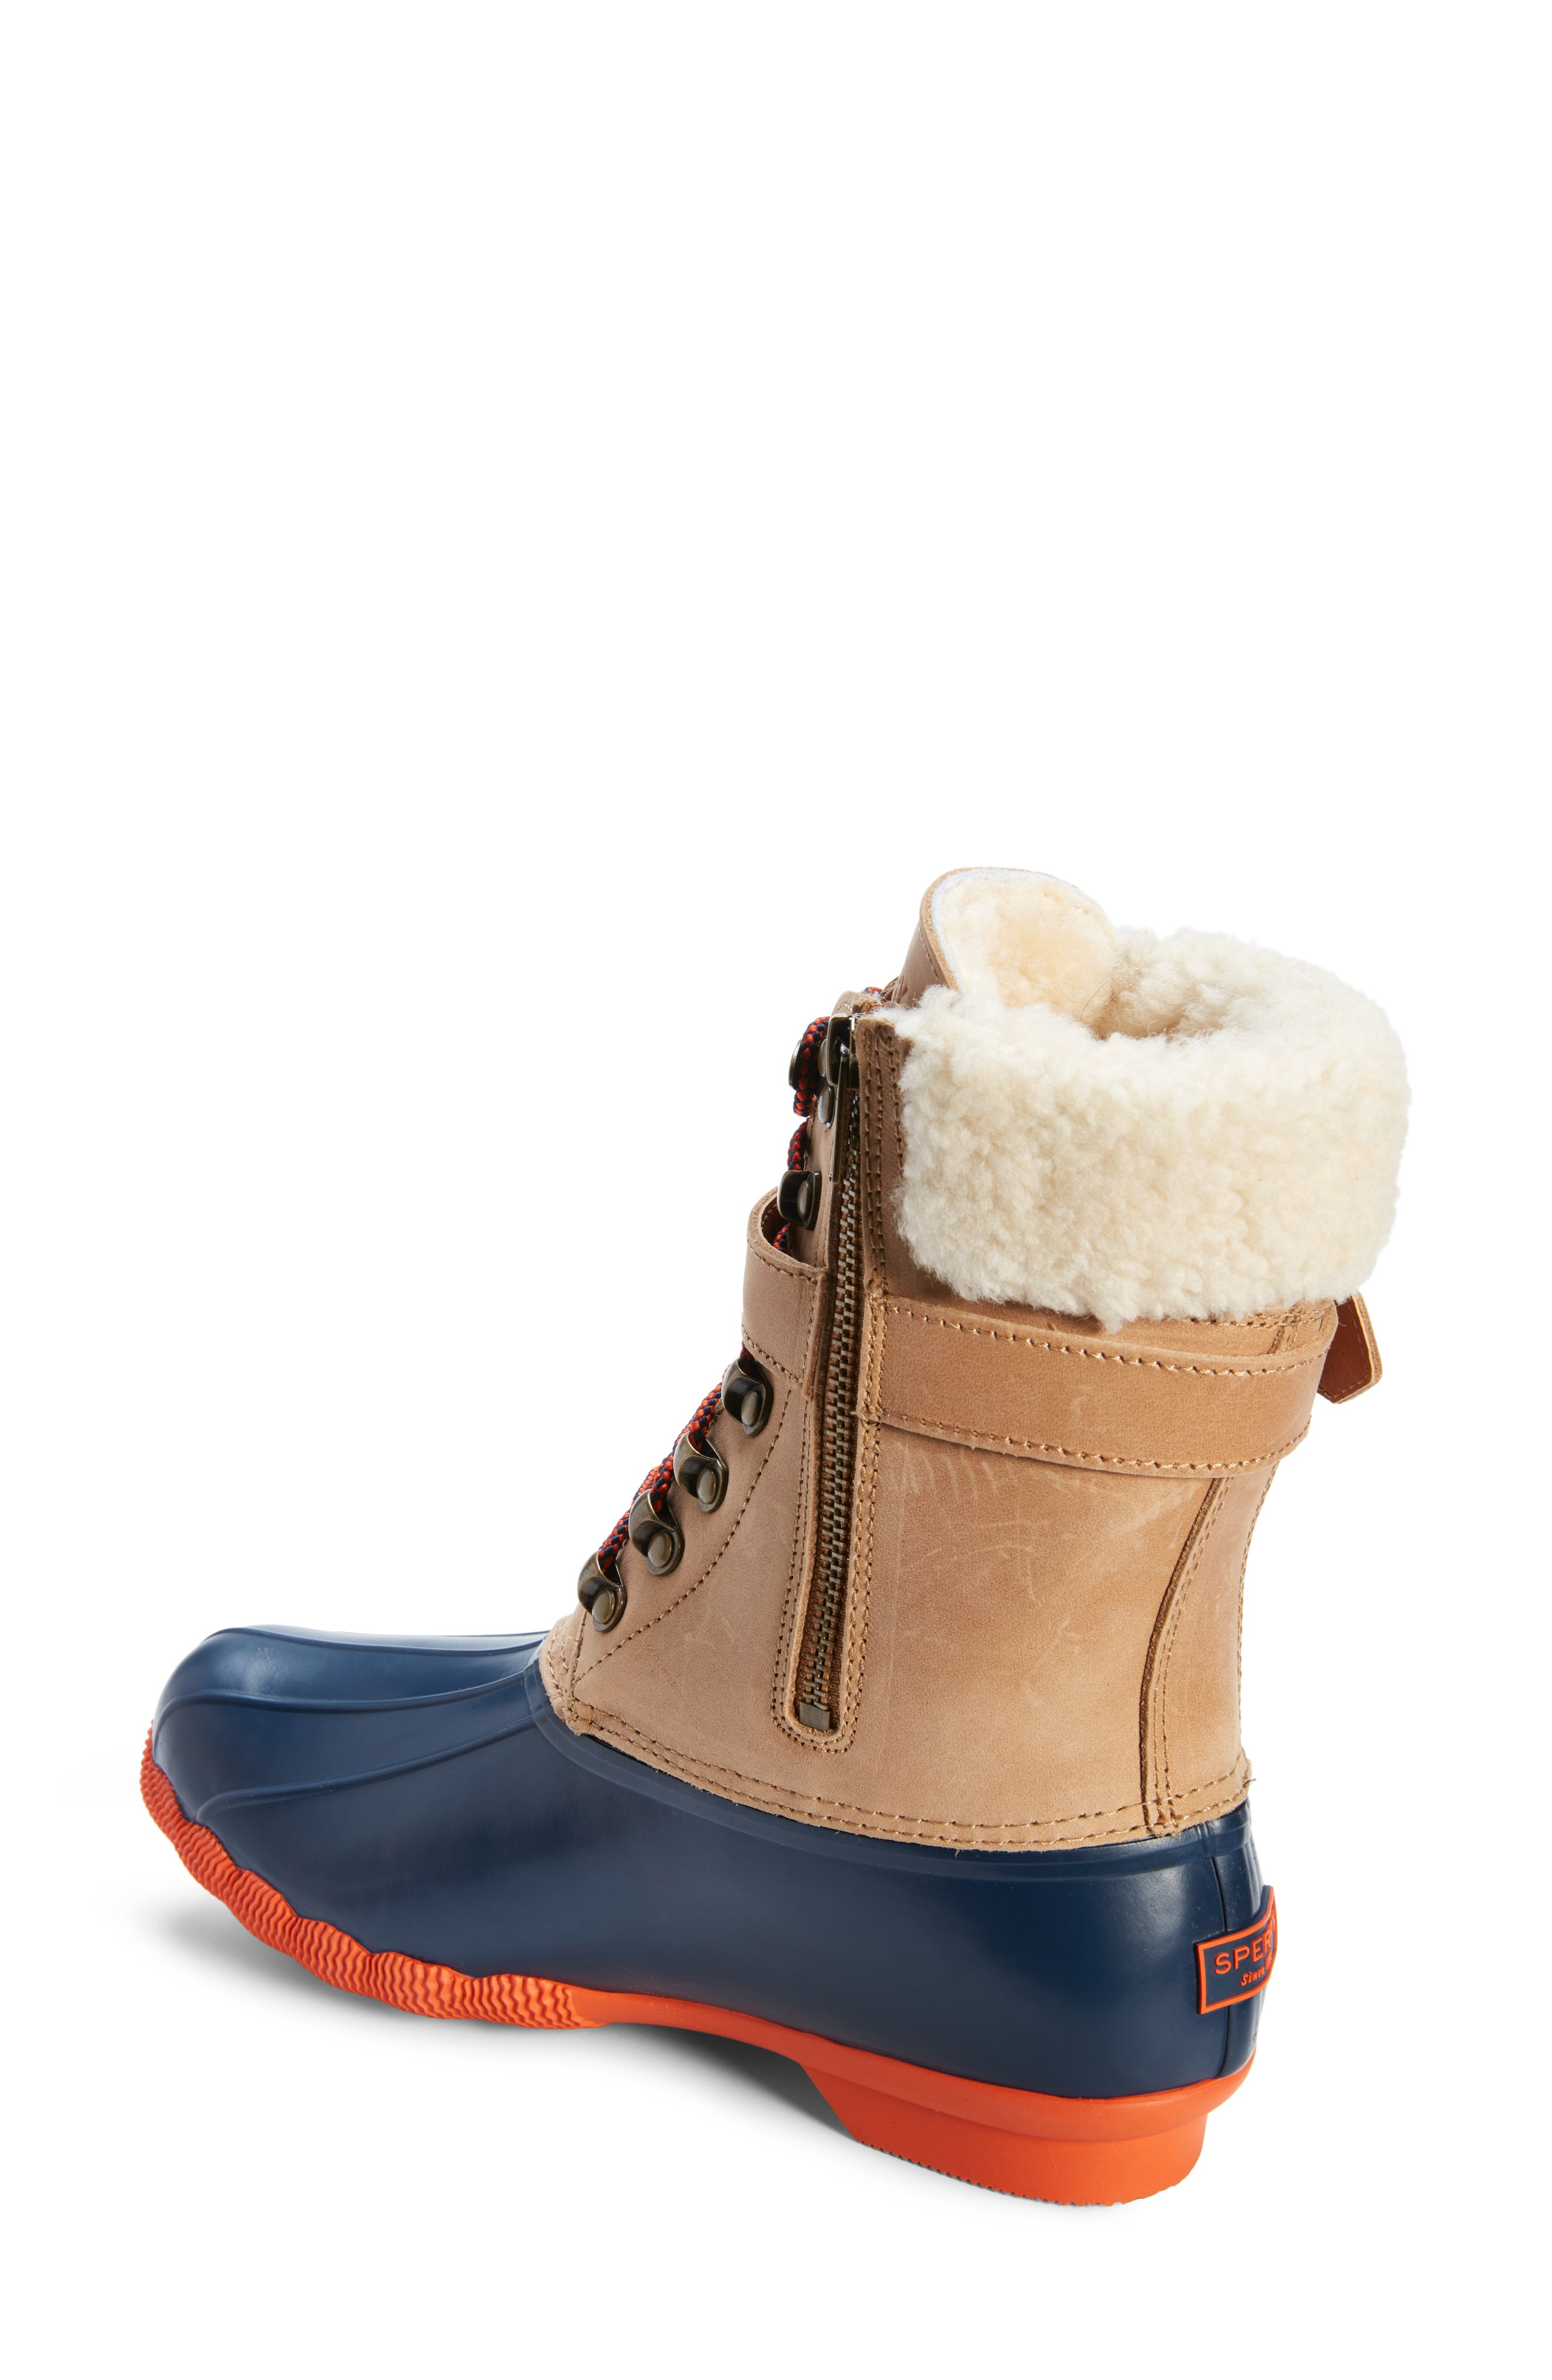 SPERRY,                             Shearwater Water-Resistant Genuine Shearling Lined Boot,                             Alternate thumbnail 2, color,                             200